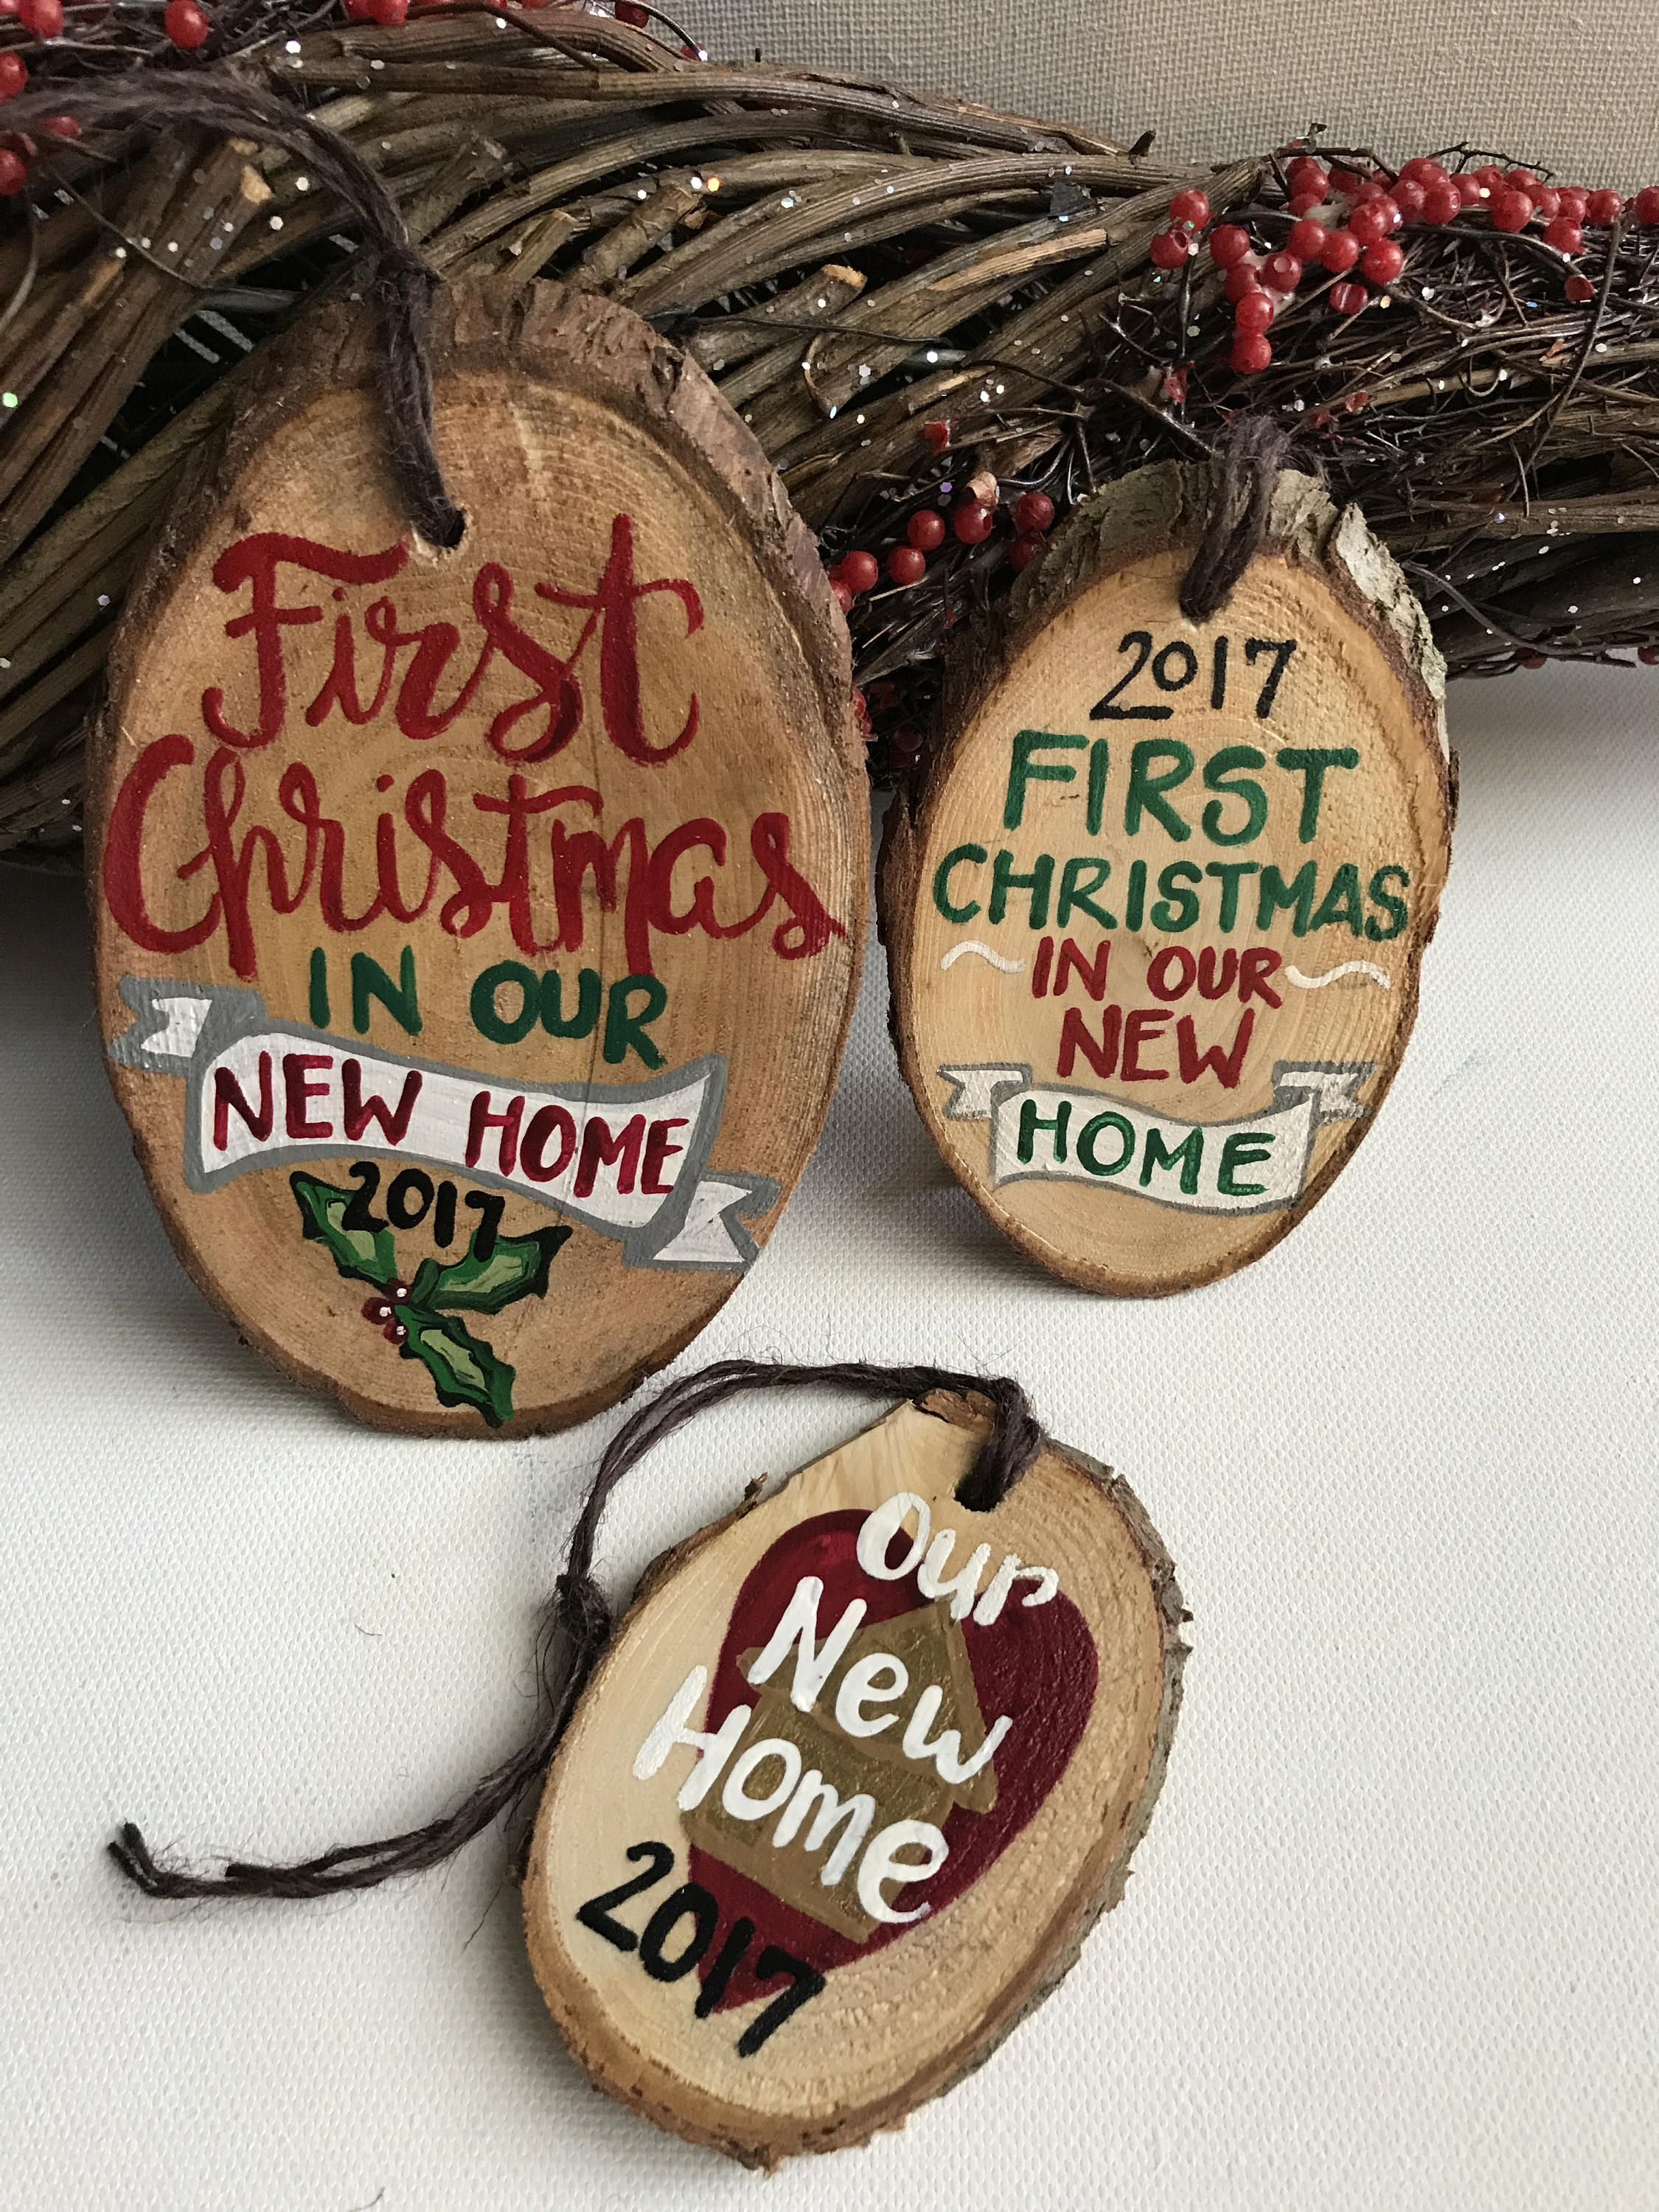 First Christmas In Our New Home Wood Slice Ornament 2019 New Etsy First Christmas Ornament Diy Christmas Ornaments Christmas Ornaments